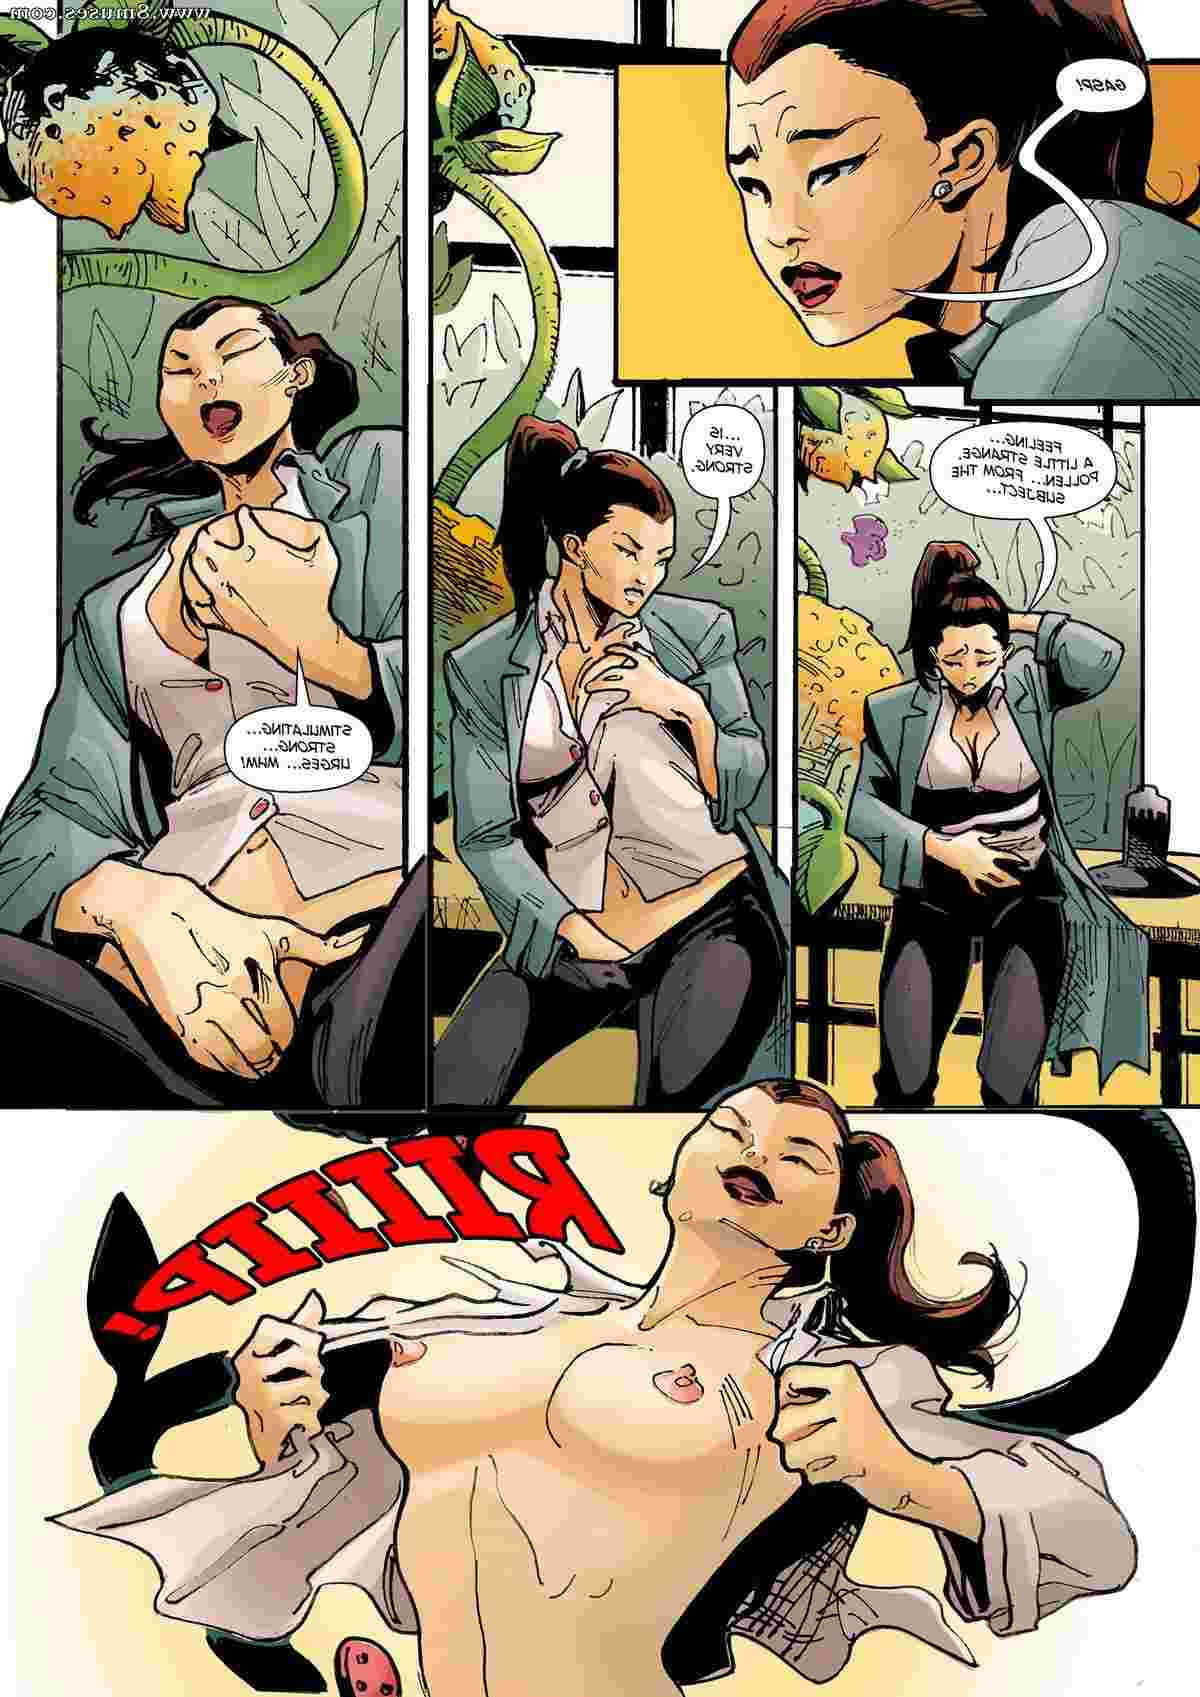 MuscleFan-Comics/Power-Plant Power_Plant__8muses_-_Sex_and_Porn_Comics_4.jpg